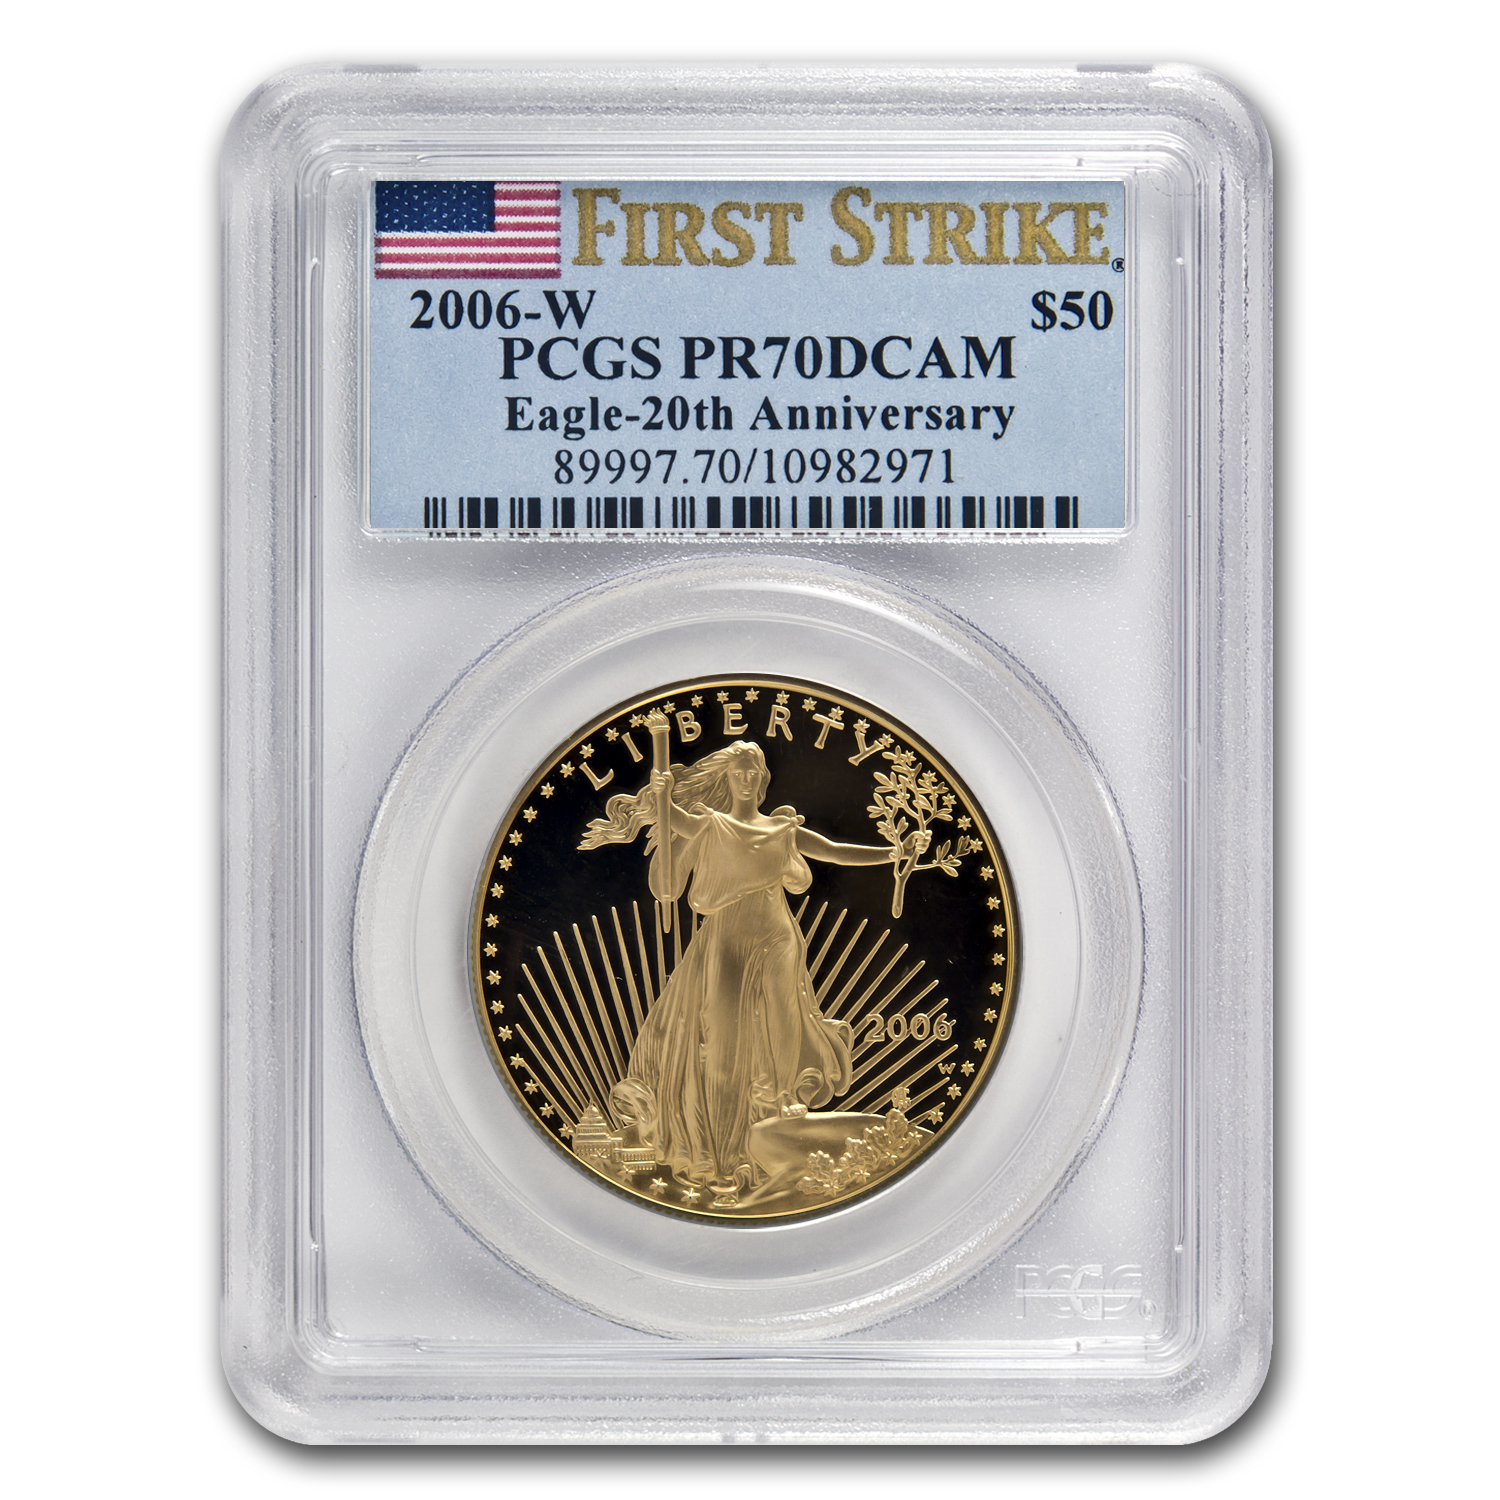 2006-W 1 oz Proof Gold American Eagle PR-70 PCGS (FS)